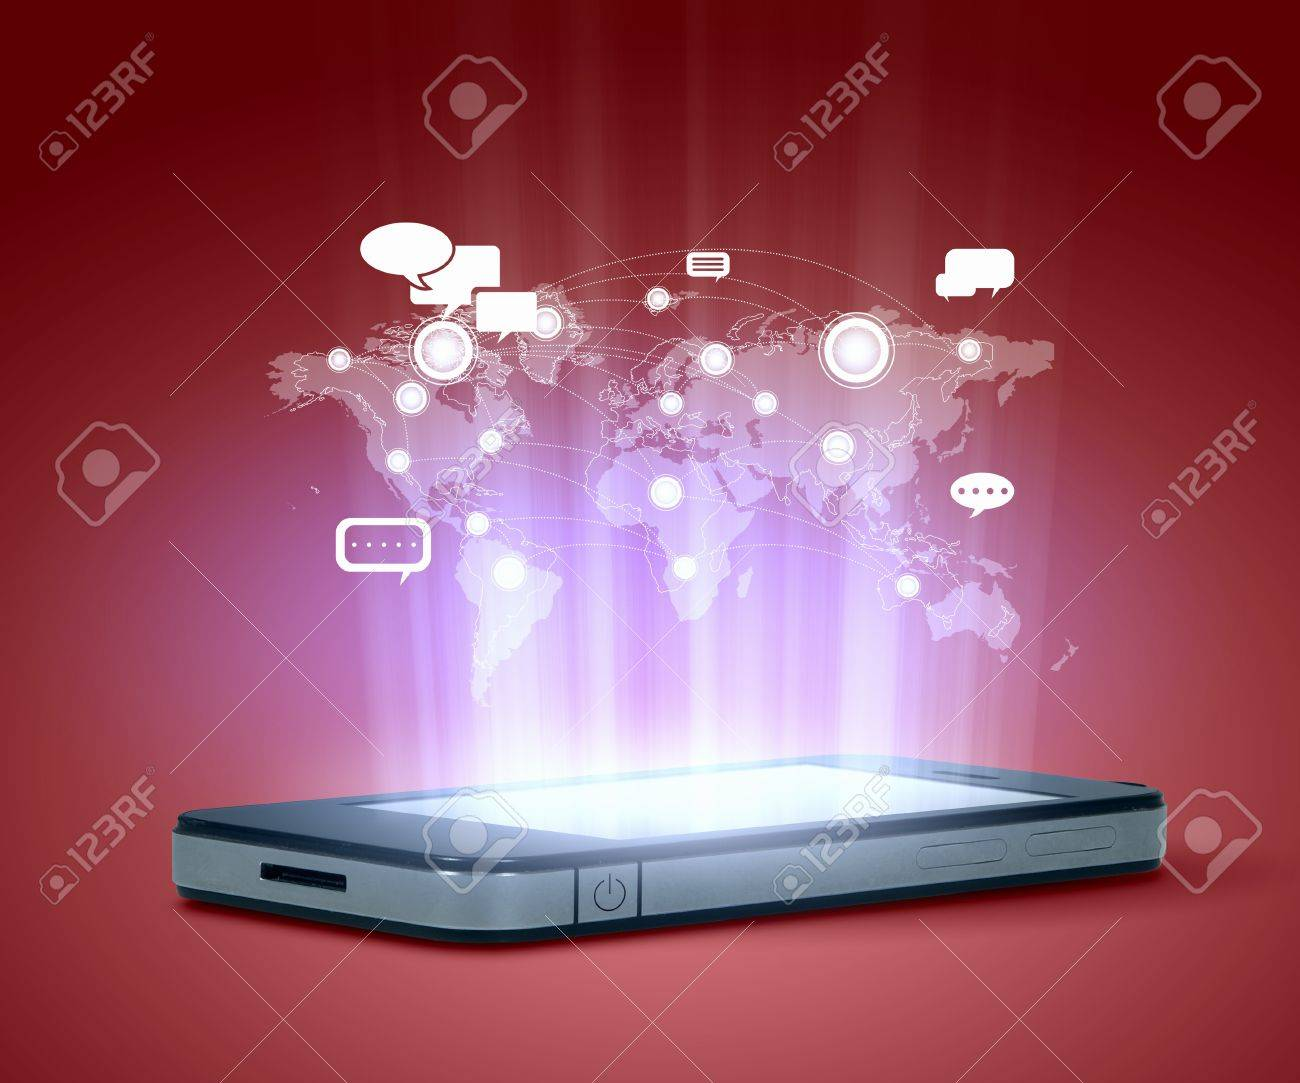 Modern communication technology illustration with mobile phone and high tech background Stock Illustration - 16737230